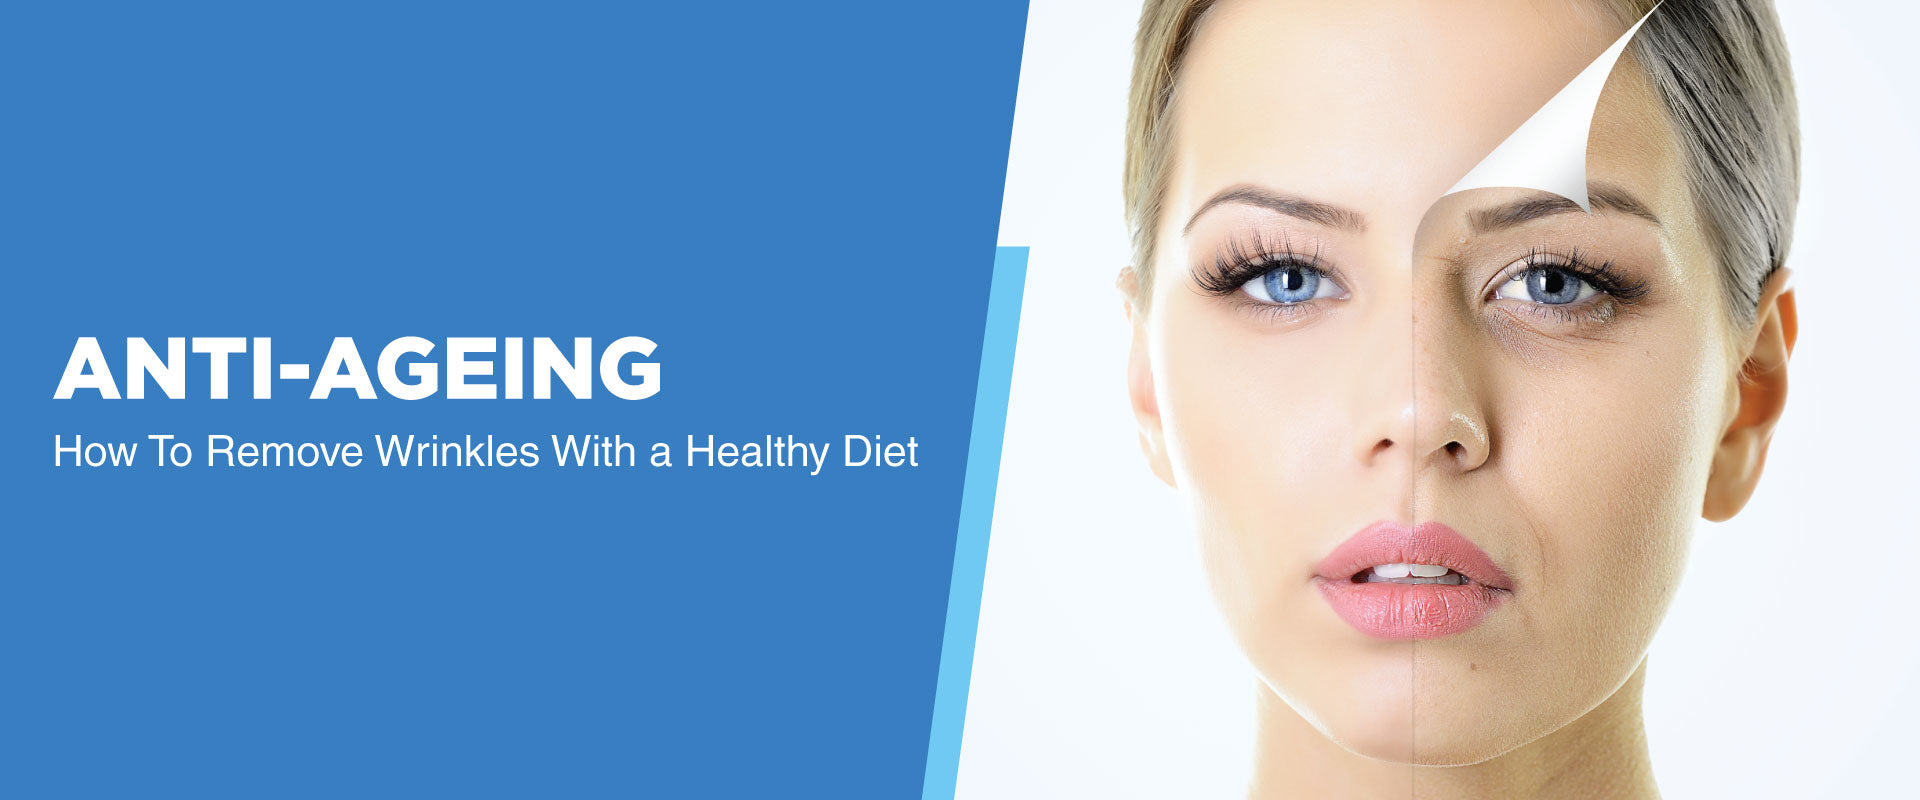 Find out what the right foods can do for your skin.